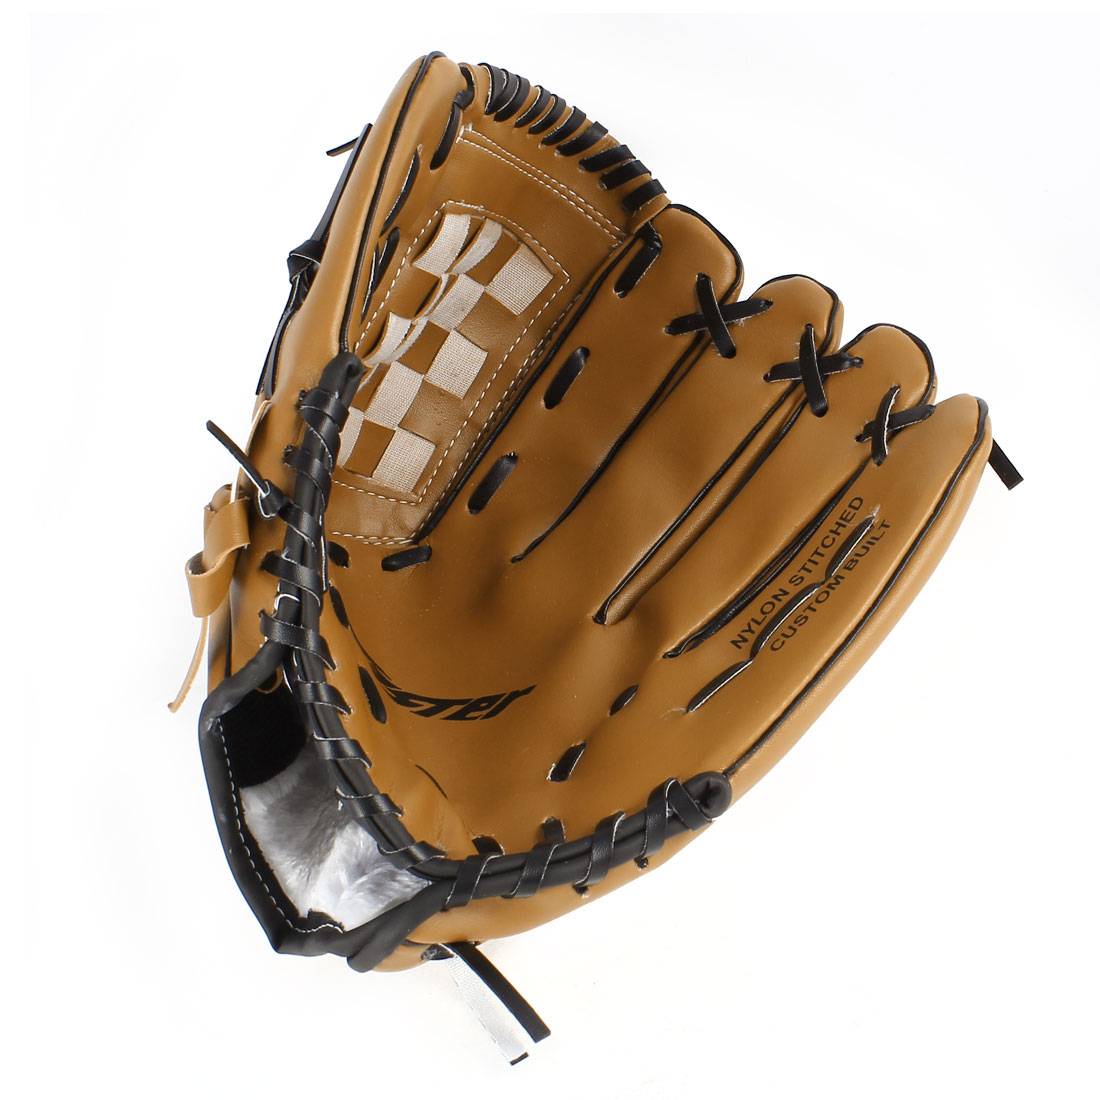 "Unisex Left Handed Brown Faux Leather Baseball Glove 9.5"" for Adult Fielder Players"